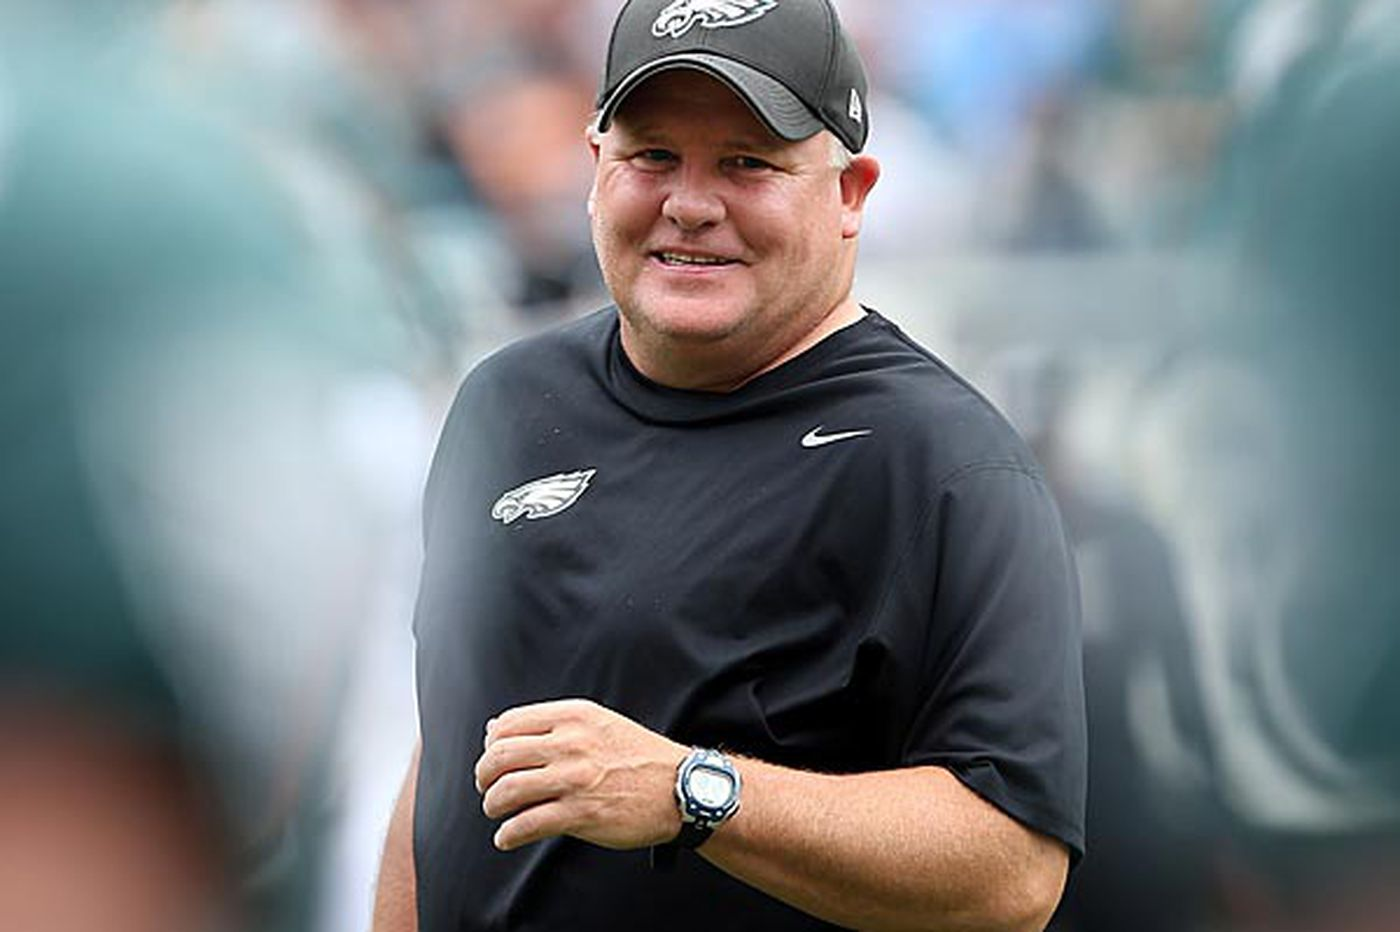 Eagles Notes: Eagles roster has remained unchanged